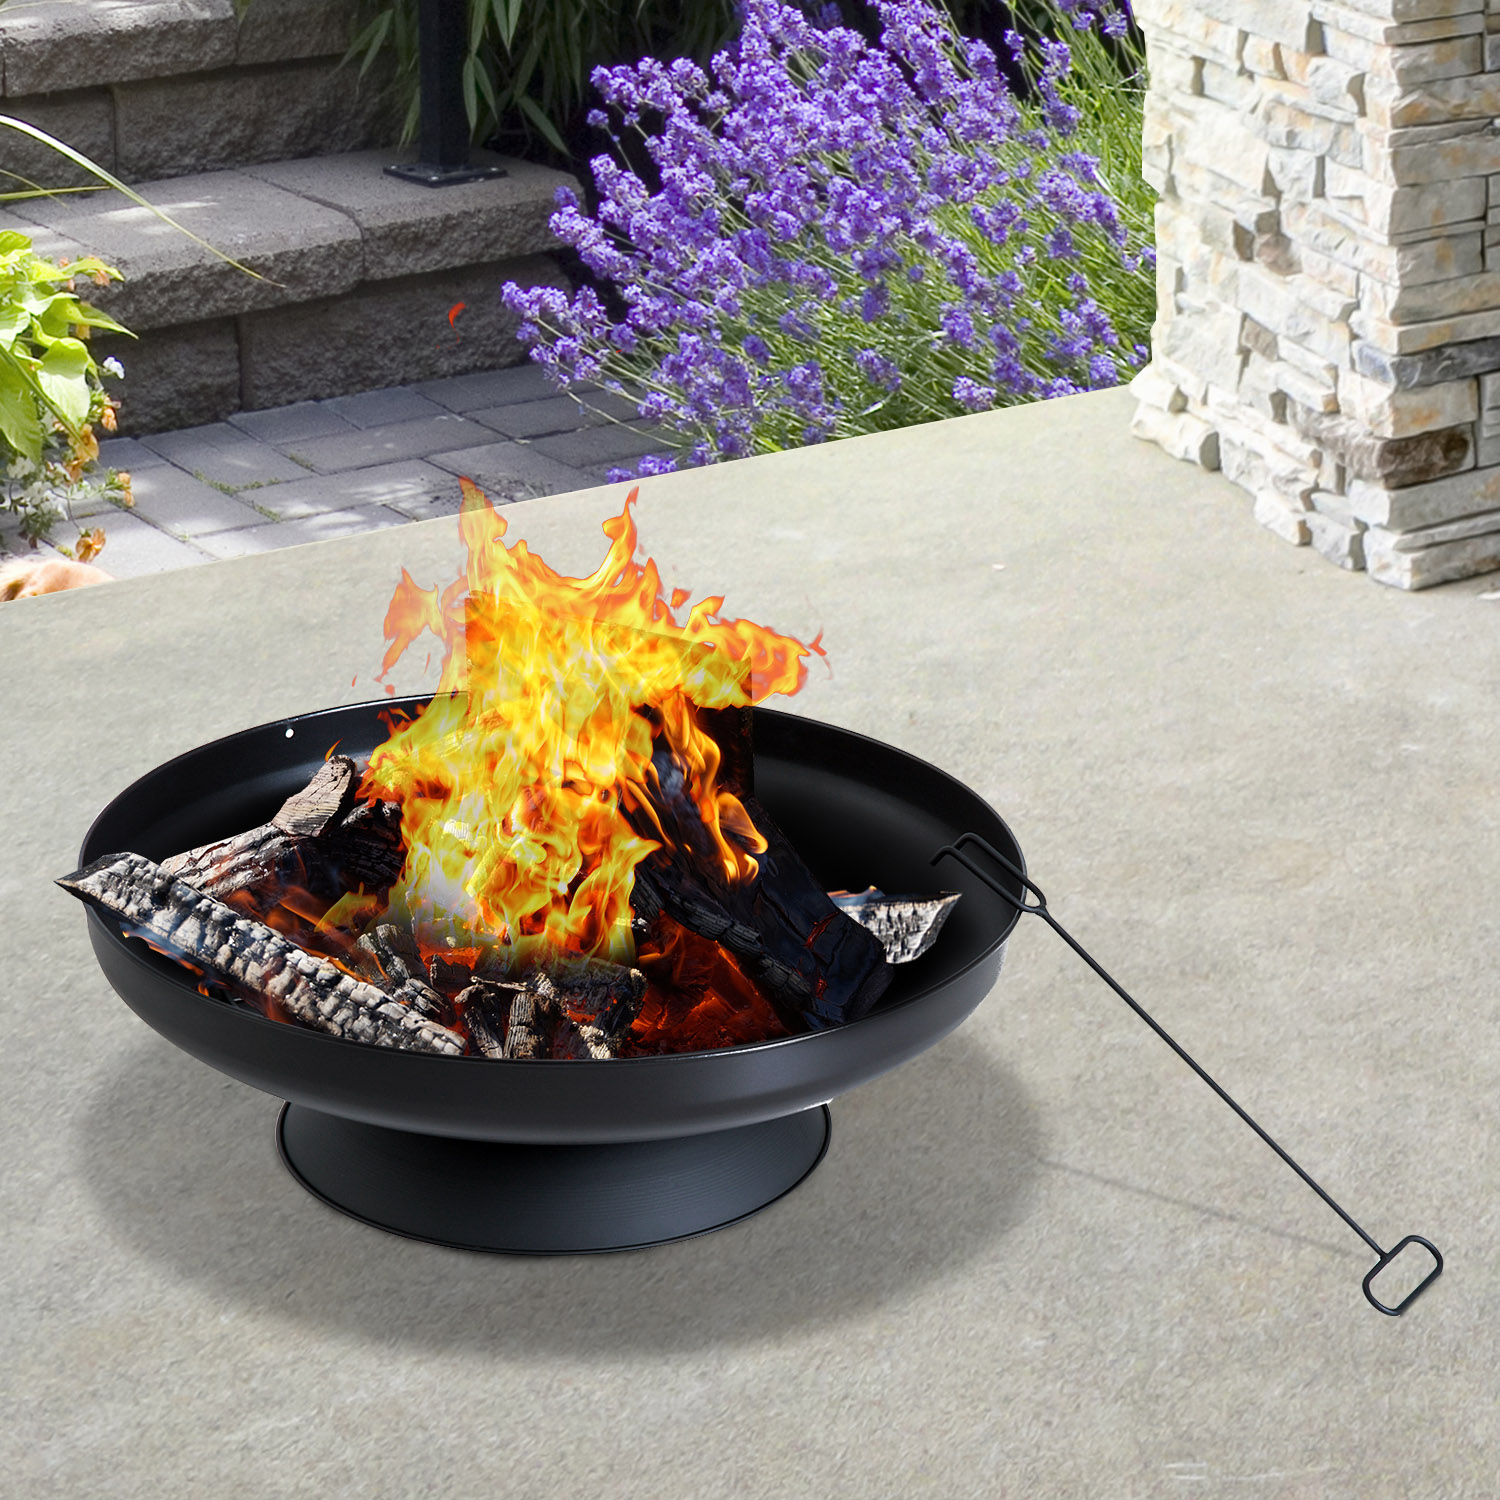 Image of £17.99 Outsunny Bowl φ 59.5 cm Firepit, Steel-Black / 60CM Round Metal Firepit Wood Charcoal Burner Backyard Stove Patio Garden Heater - Black Outdoor Steel φ59.5cm 842-089 5056029888056